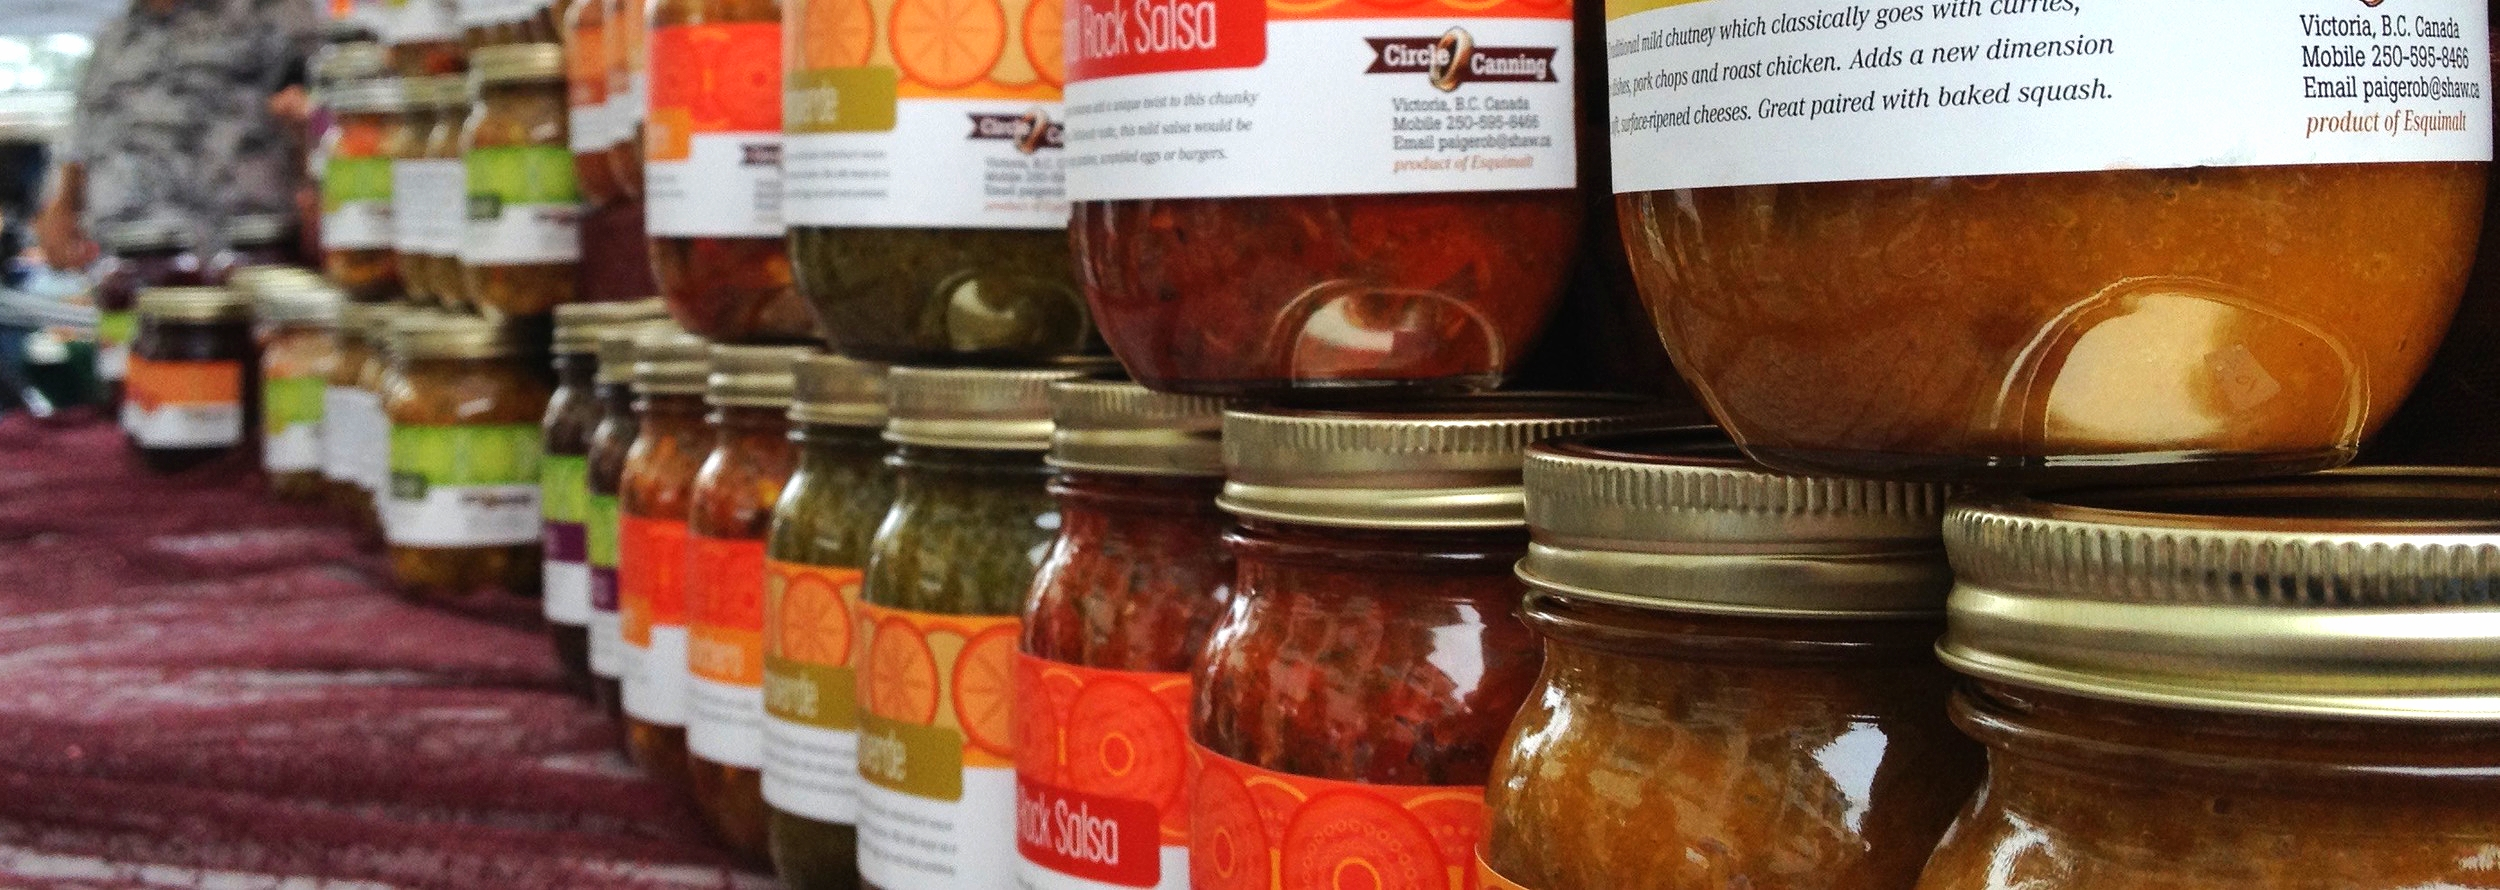 Circle Canning is donating 3 jars of amazing preserves to our speakers!